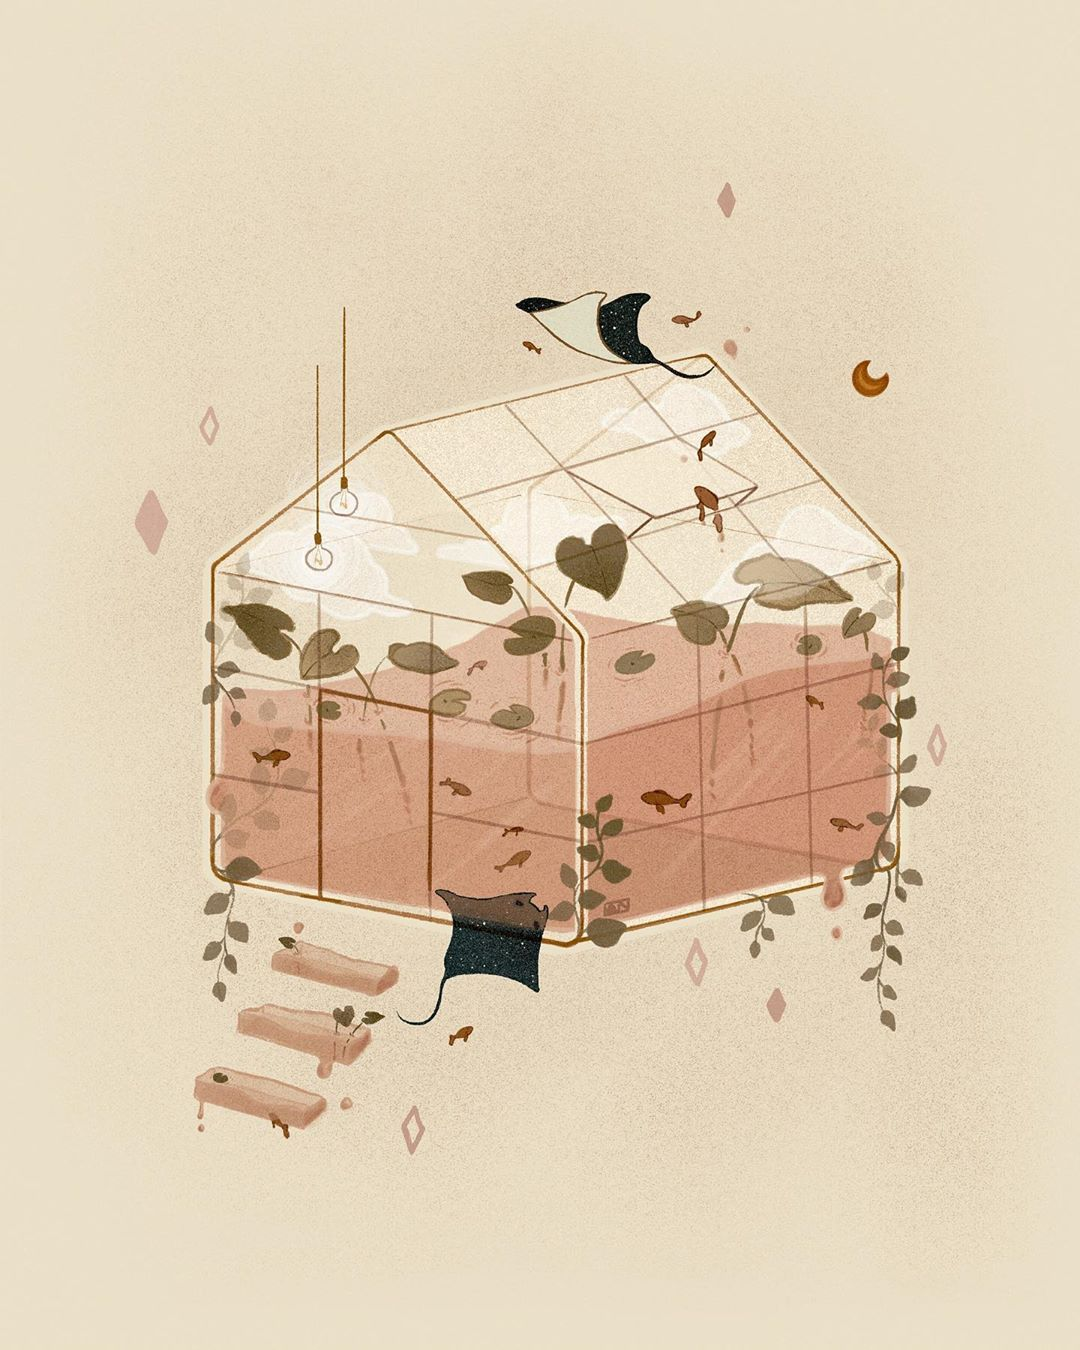 Surreal illustration by Angie Nguyen